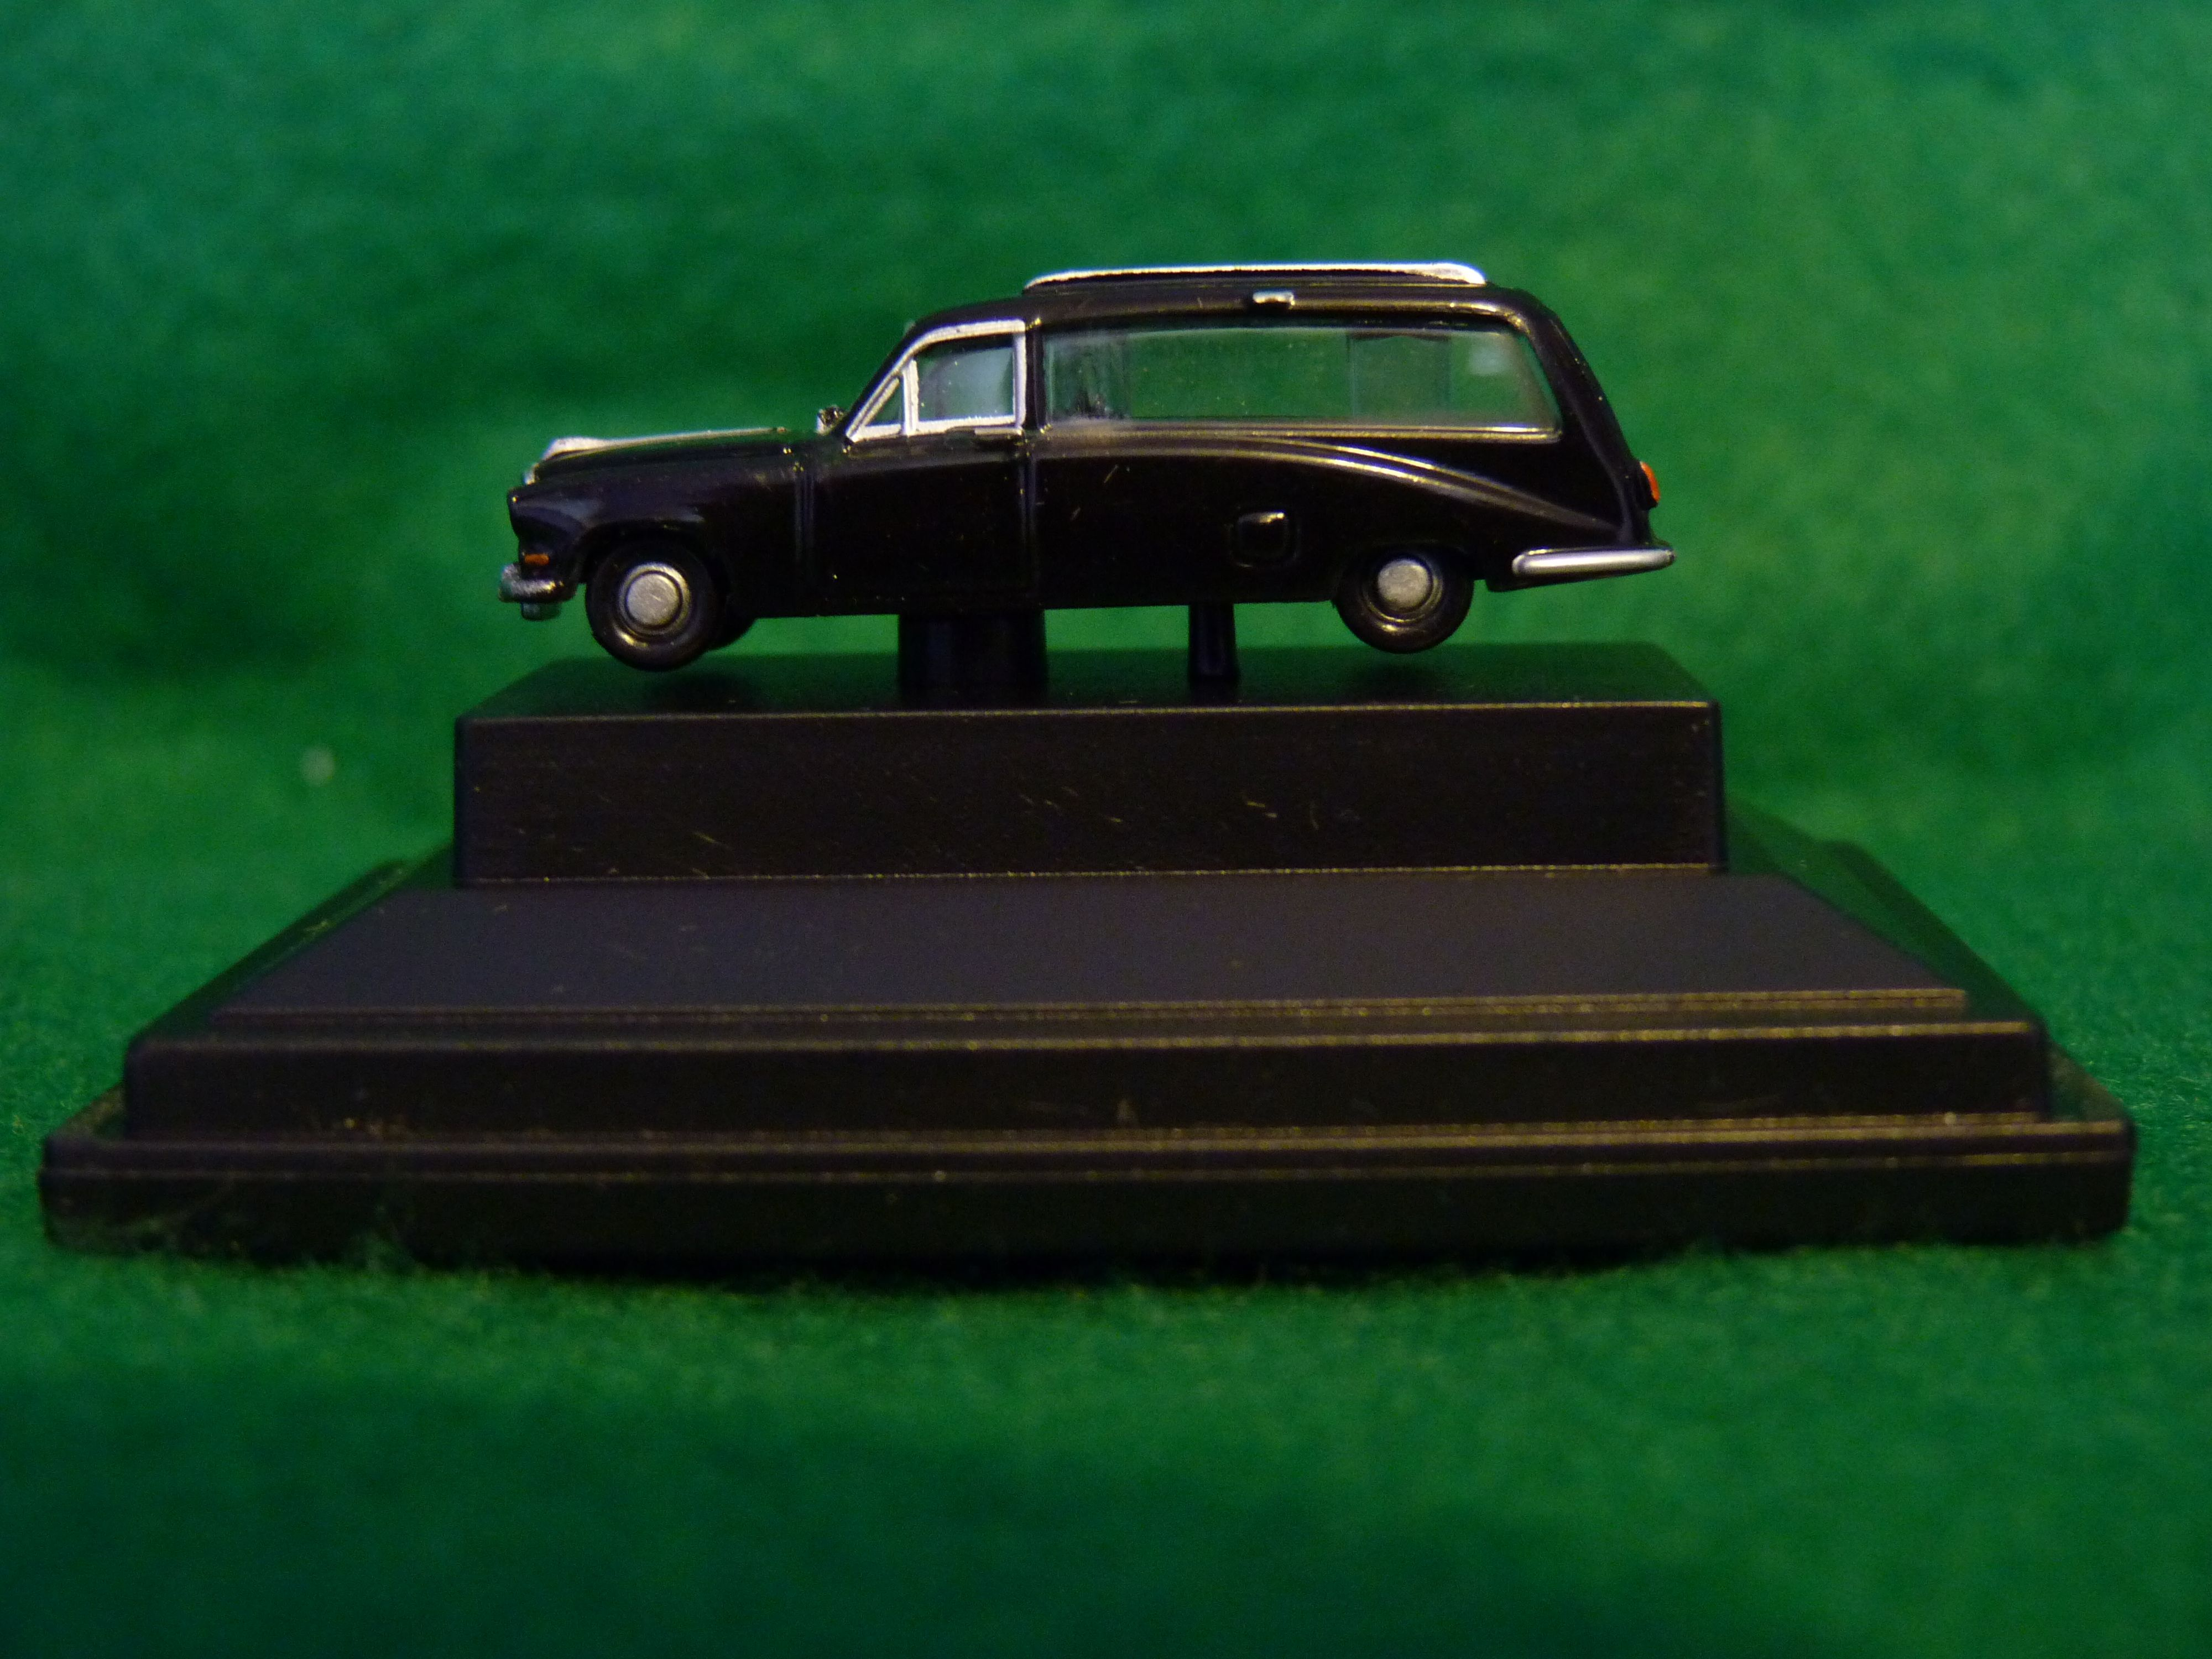 Miniature Model Hearse in Display Case. A tiny piece of the macabre, or perhaps a daily reminder of someone's dream car. The car can be unscrewed from the stand. 3.5cm x 1cm x 1cm.